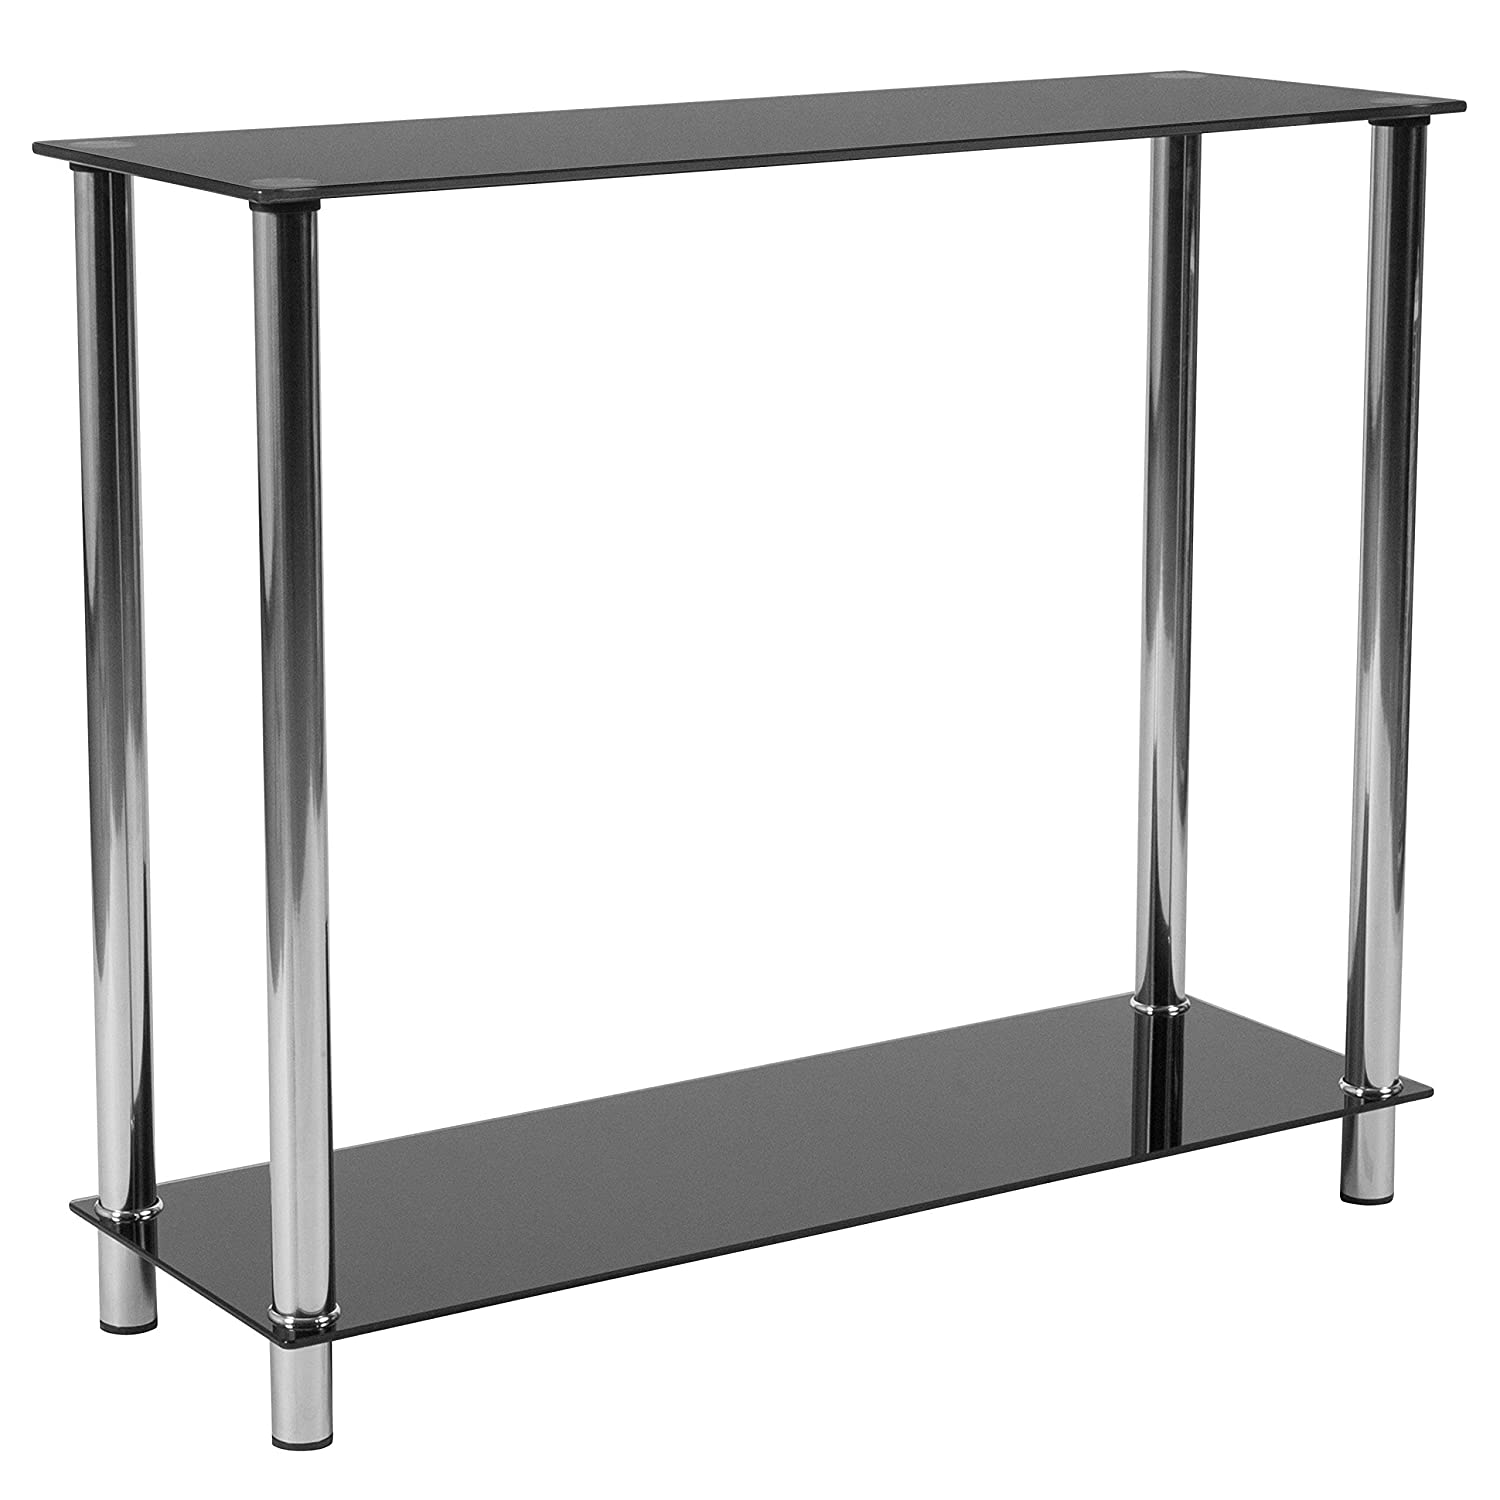 Amazon com flash furniture riverside collection black glass console table with shelves and stainless steel frame kitchen dining